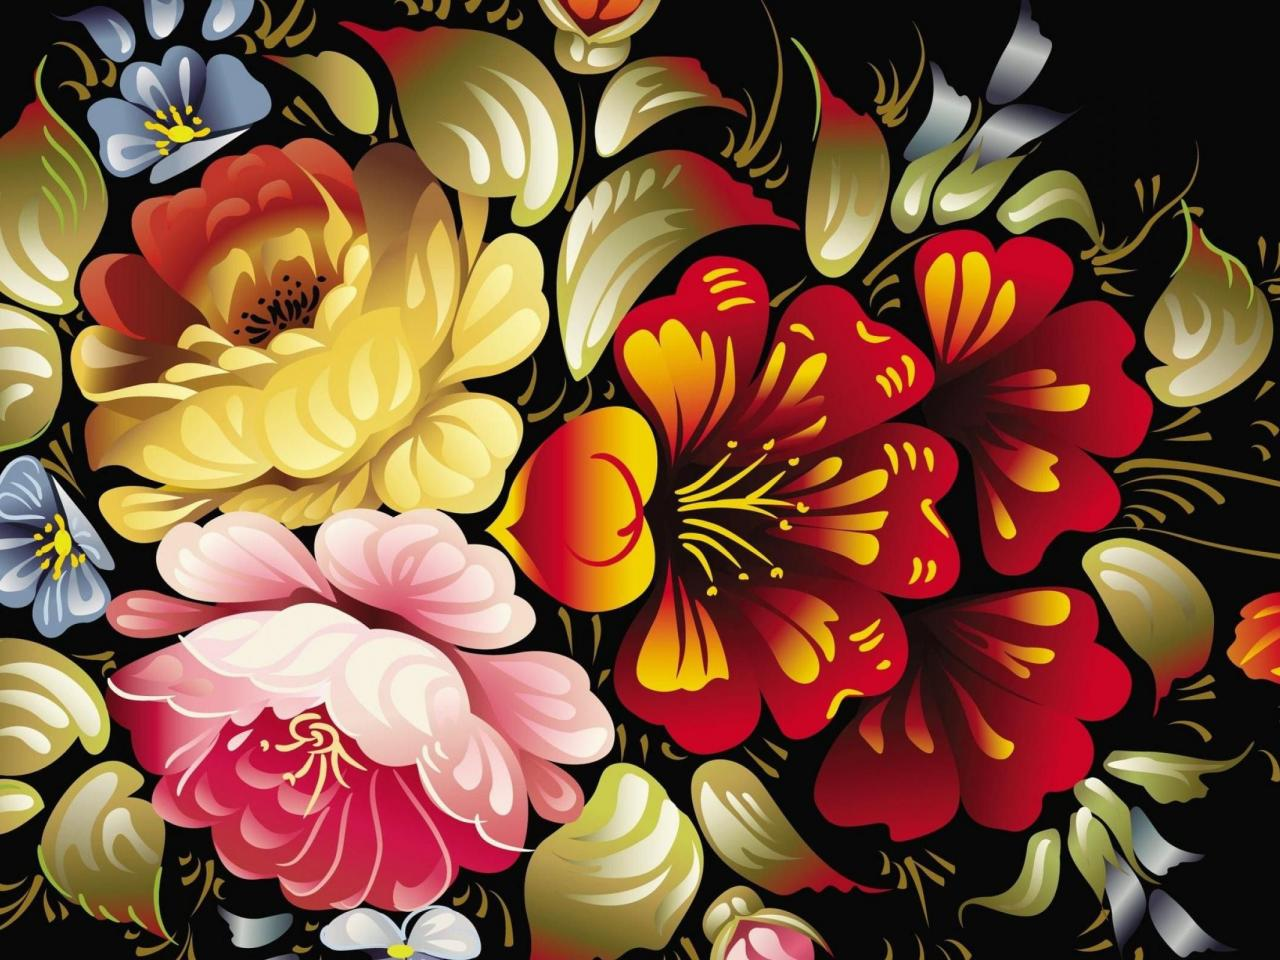 Abstract Design Flower Wallpaper: Abstract Art Desktop Wallpaper With Colorful Flower In 3D